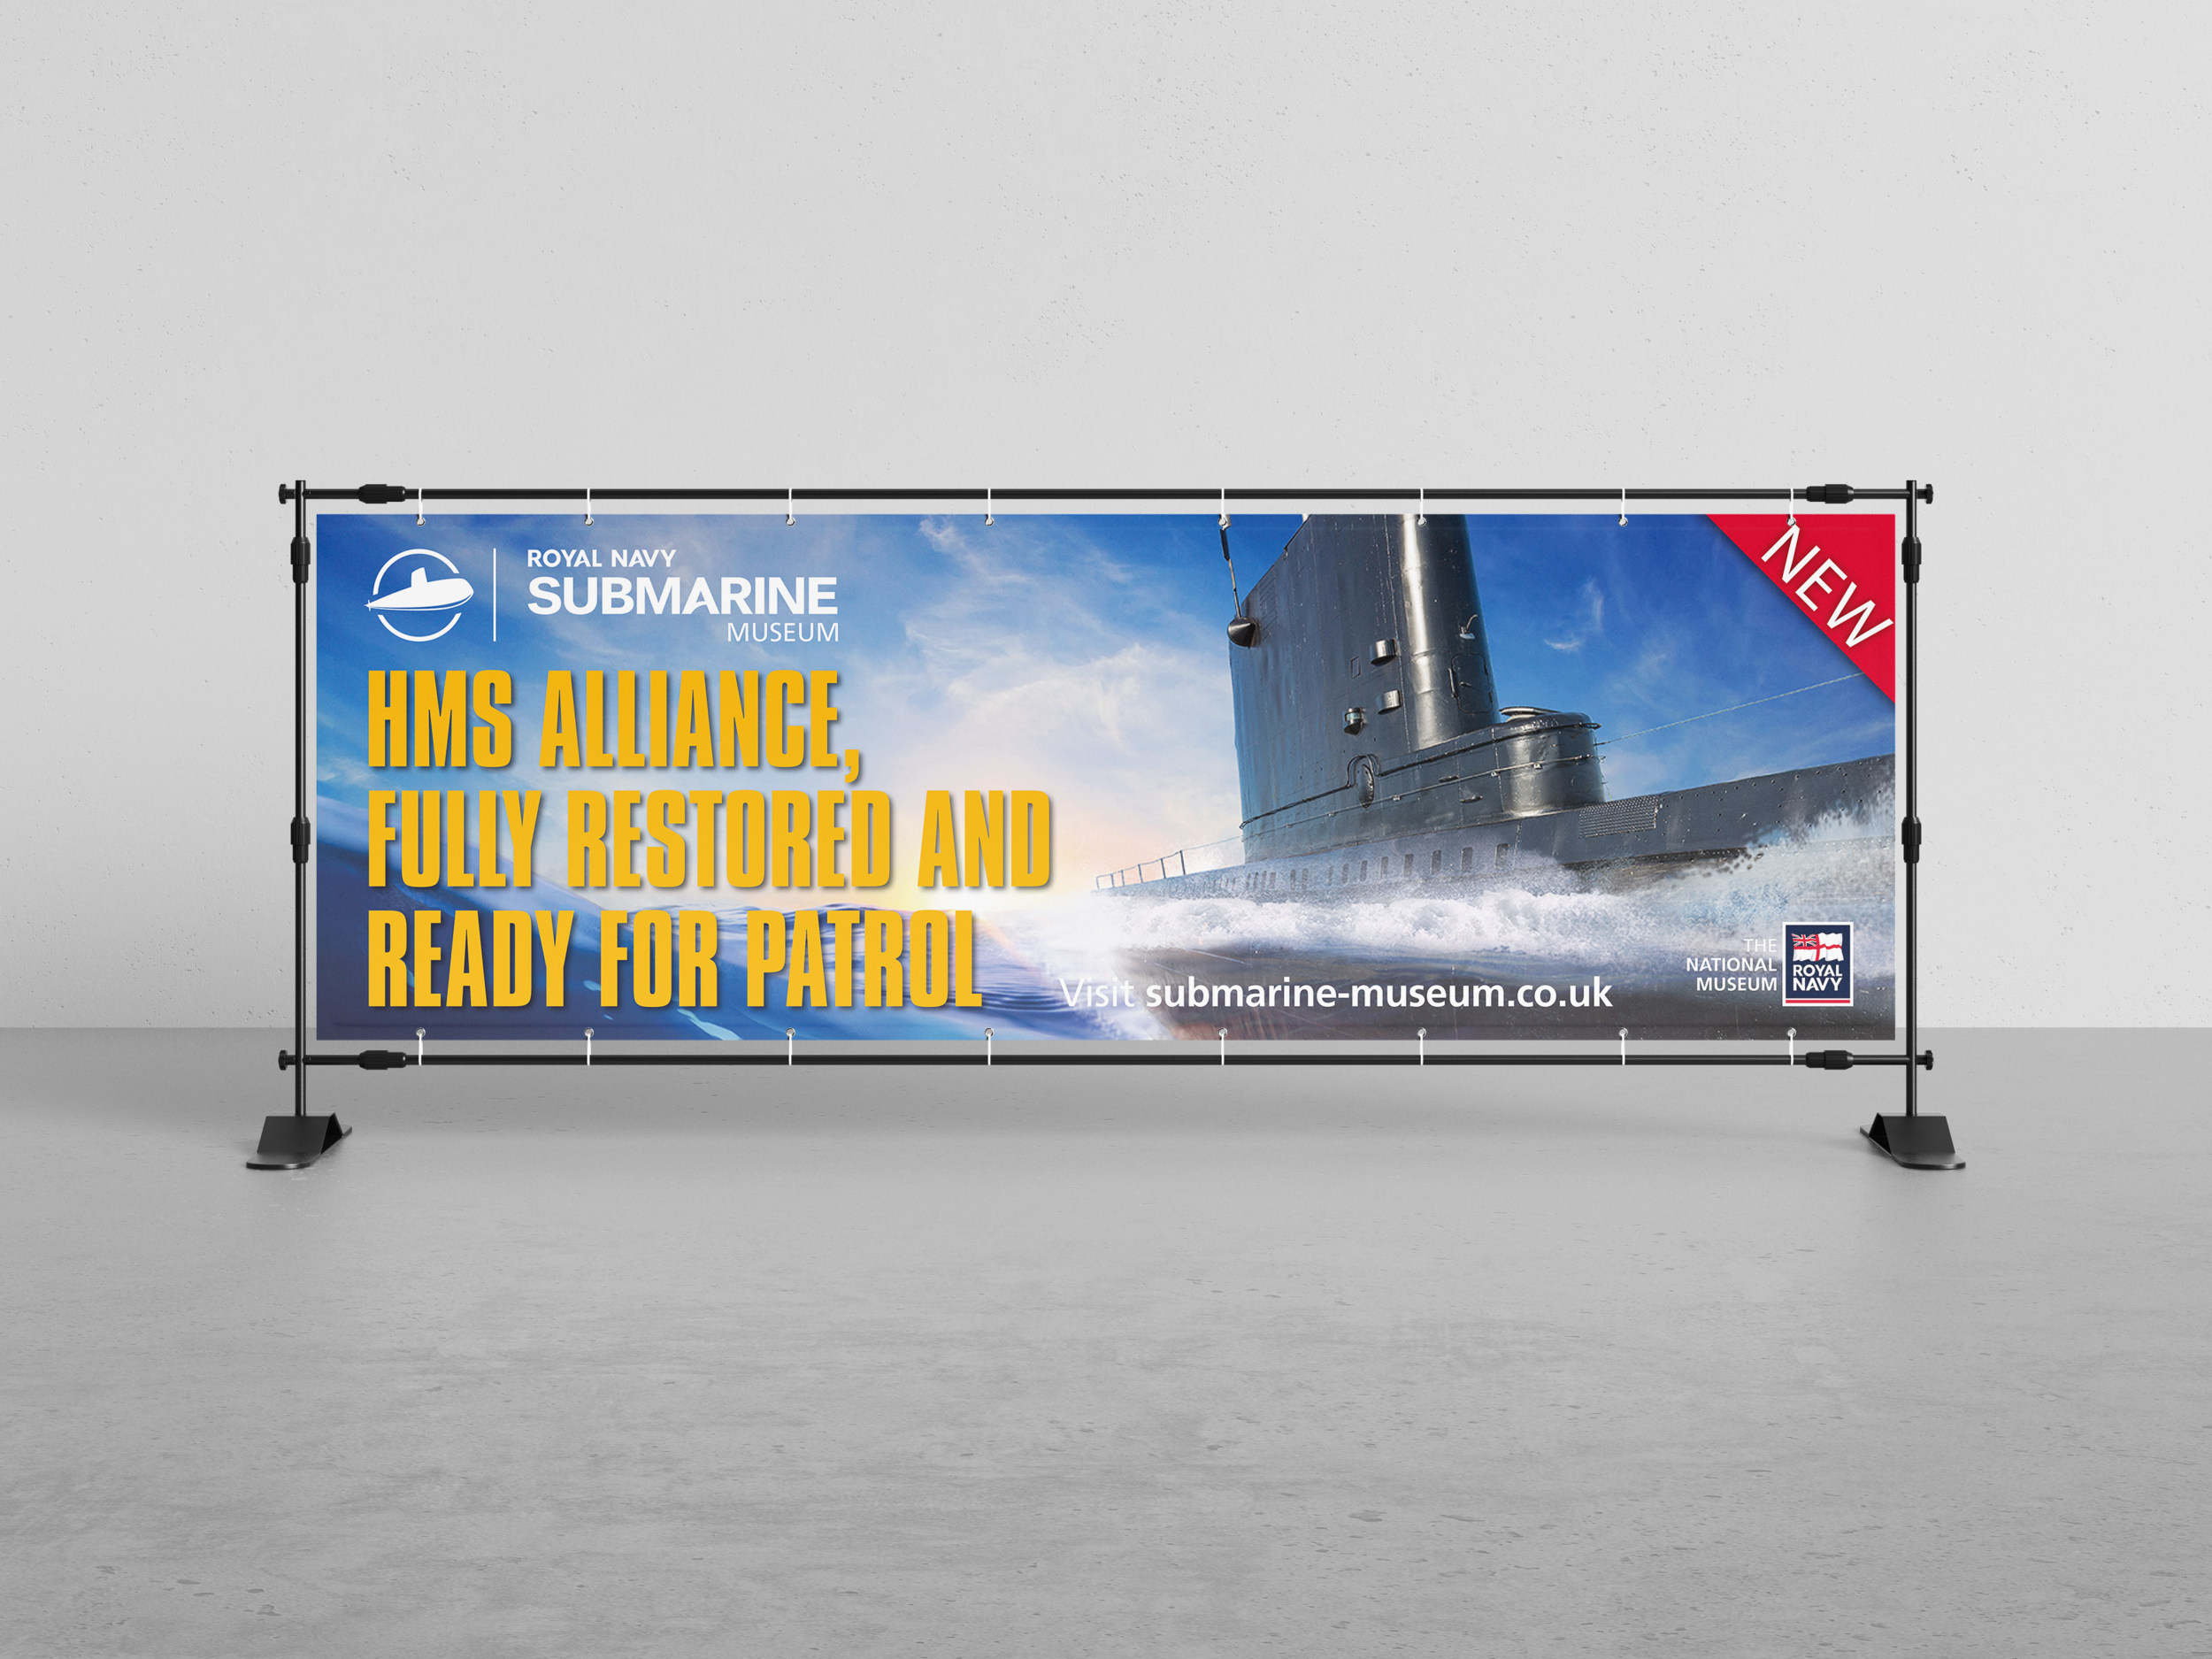 The Royal Navy Submarine Museum Banner Frame Outdoor Stand Exhibitions